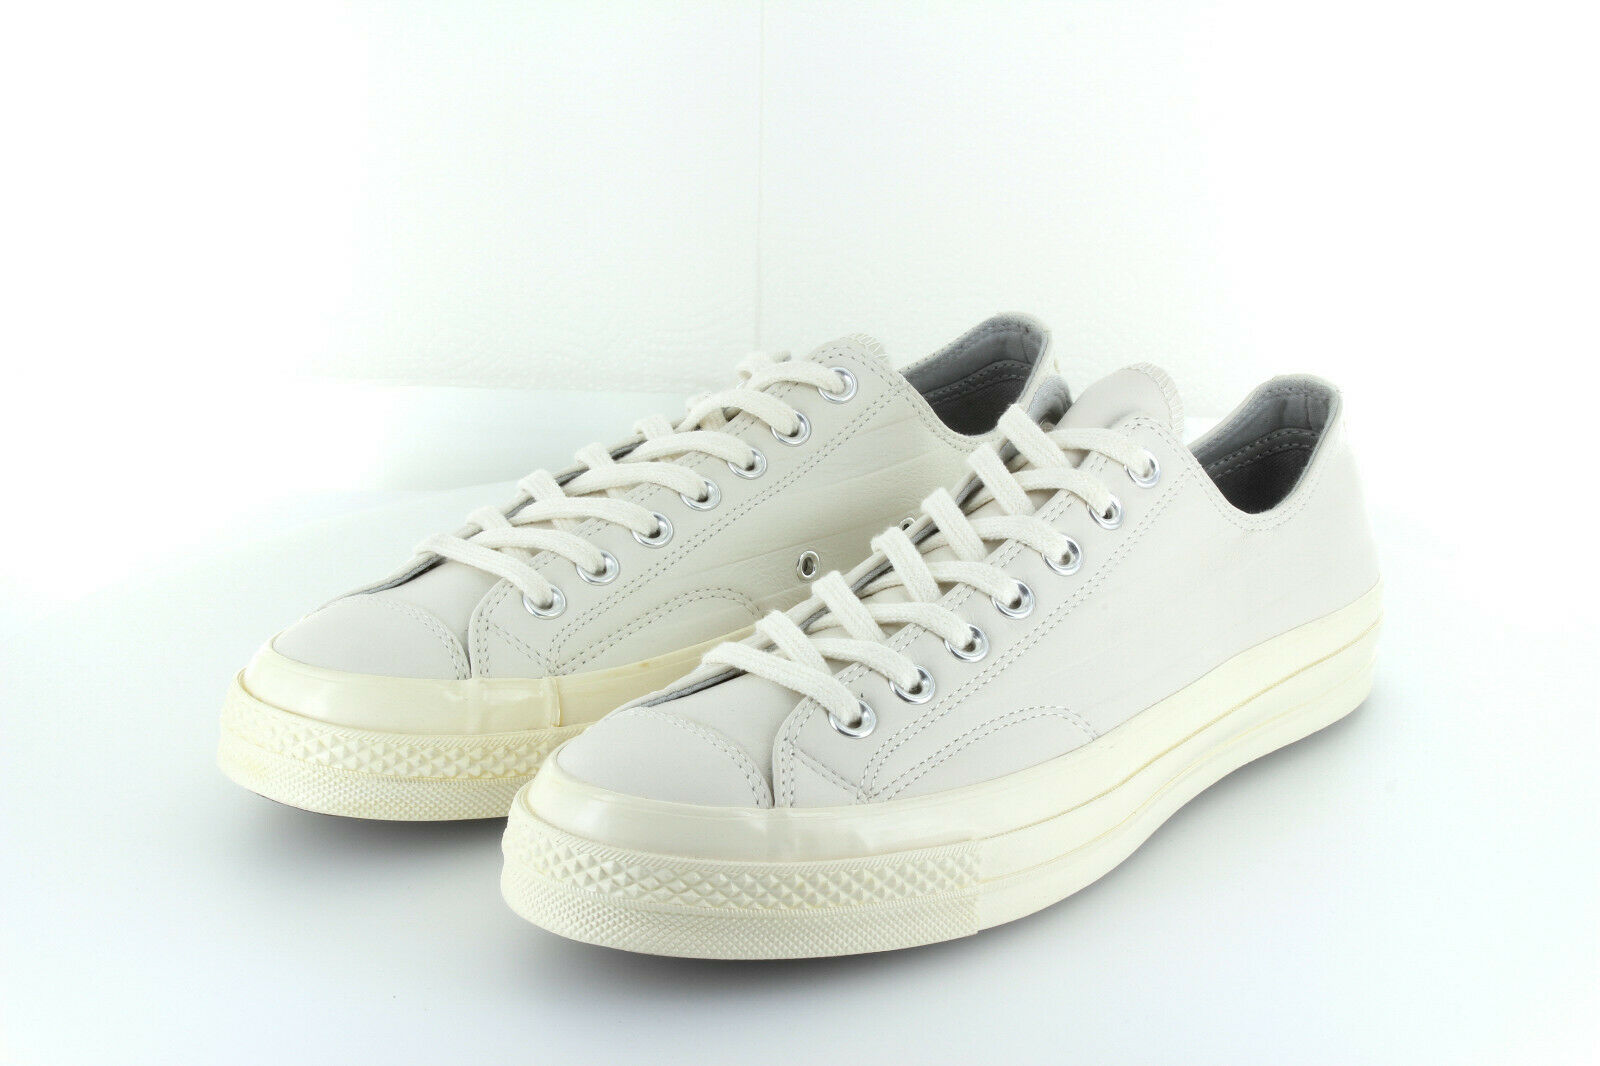 Converse CT AS Ox 70s White Creme Leather Limited Edition 42,5   43,5 US 9